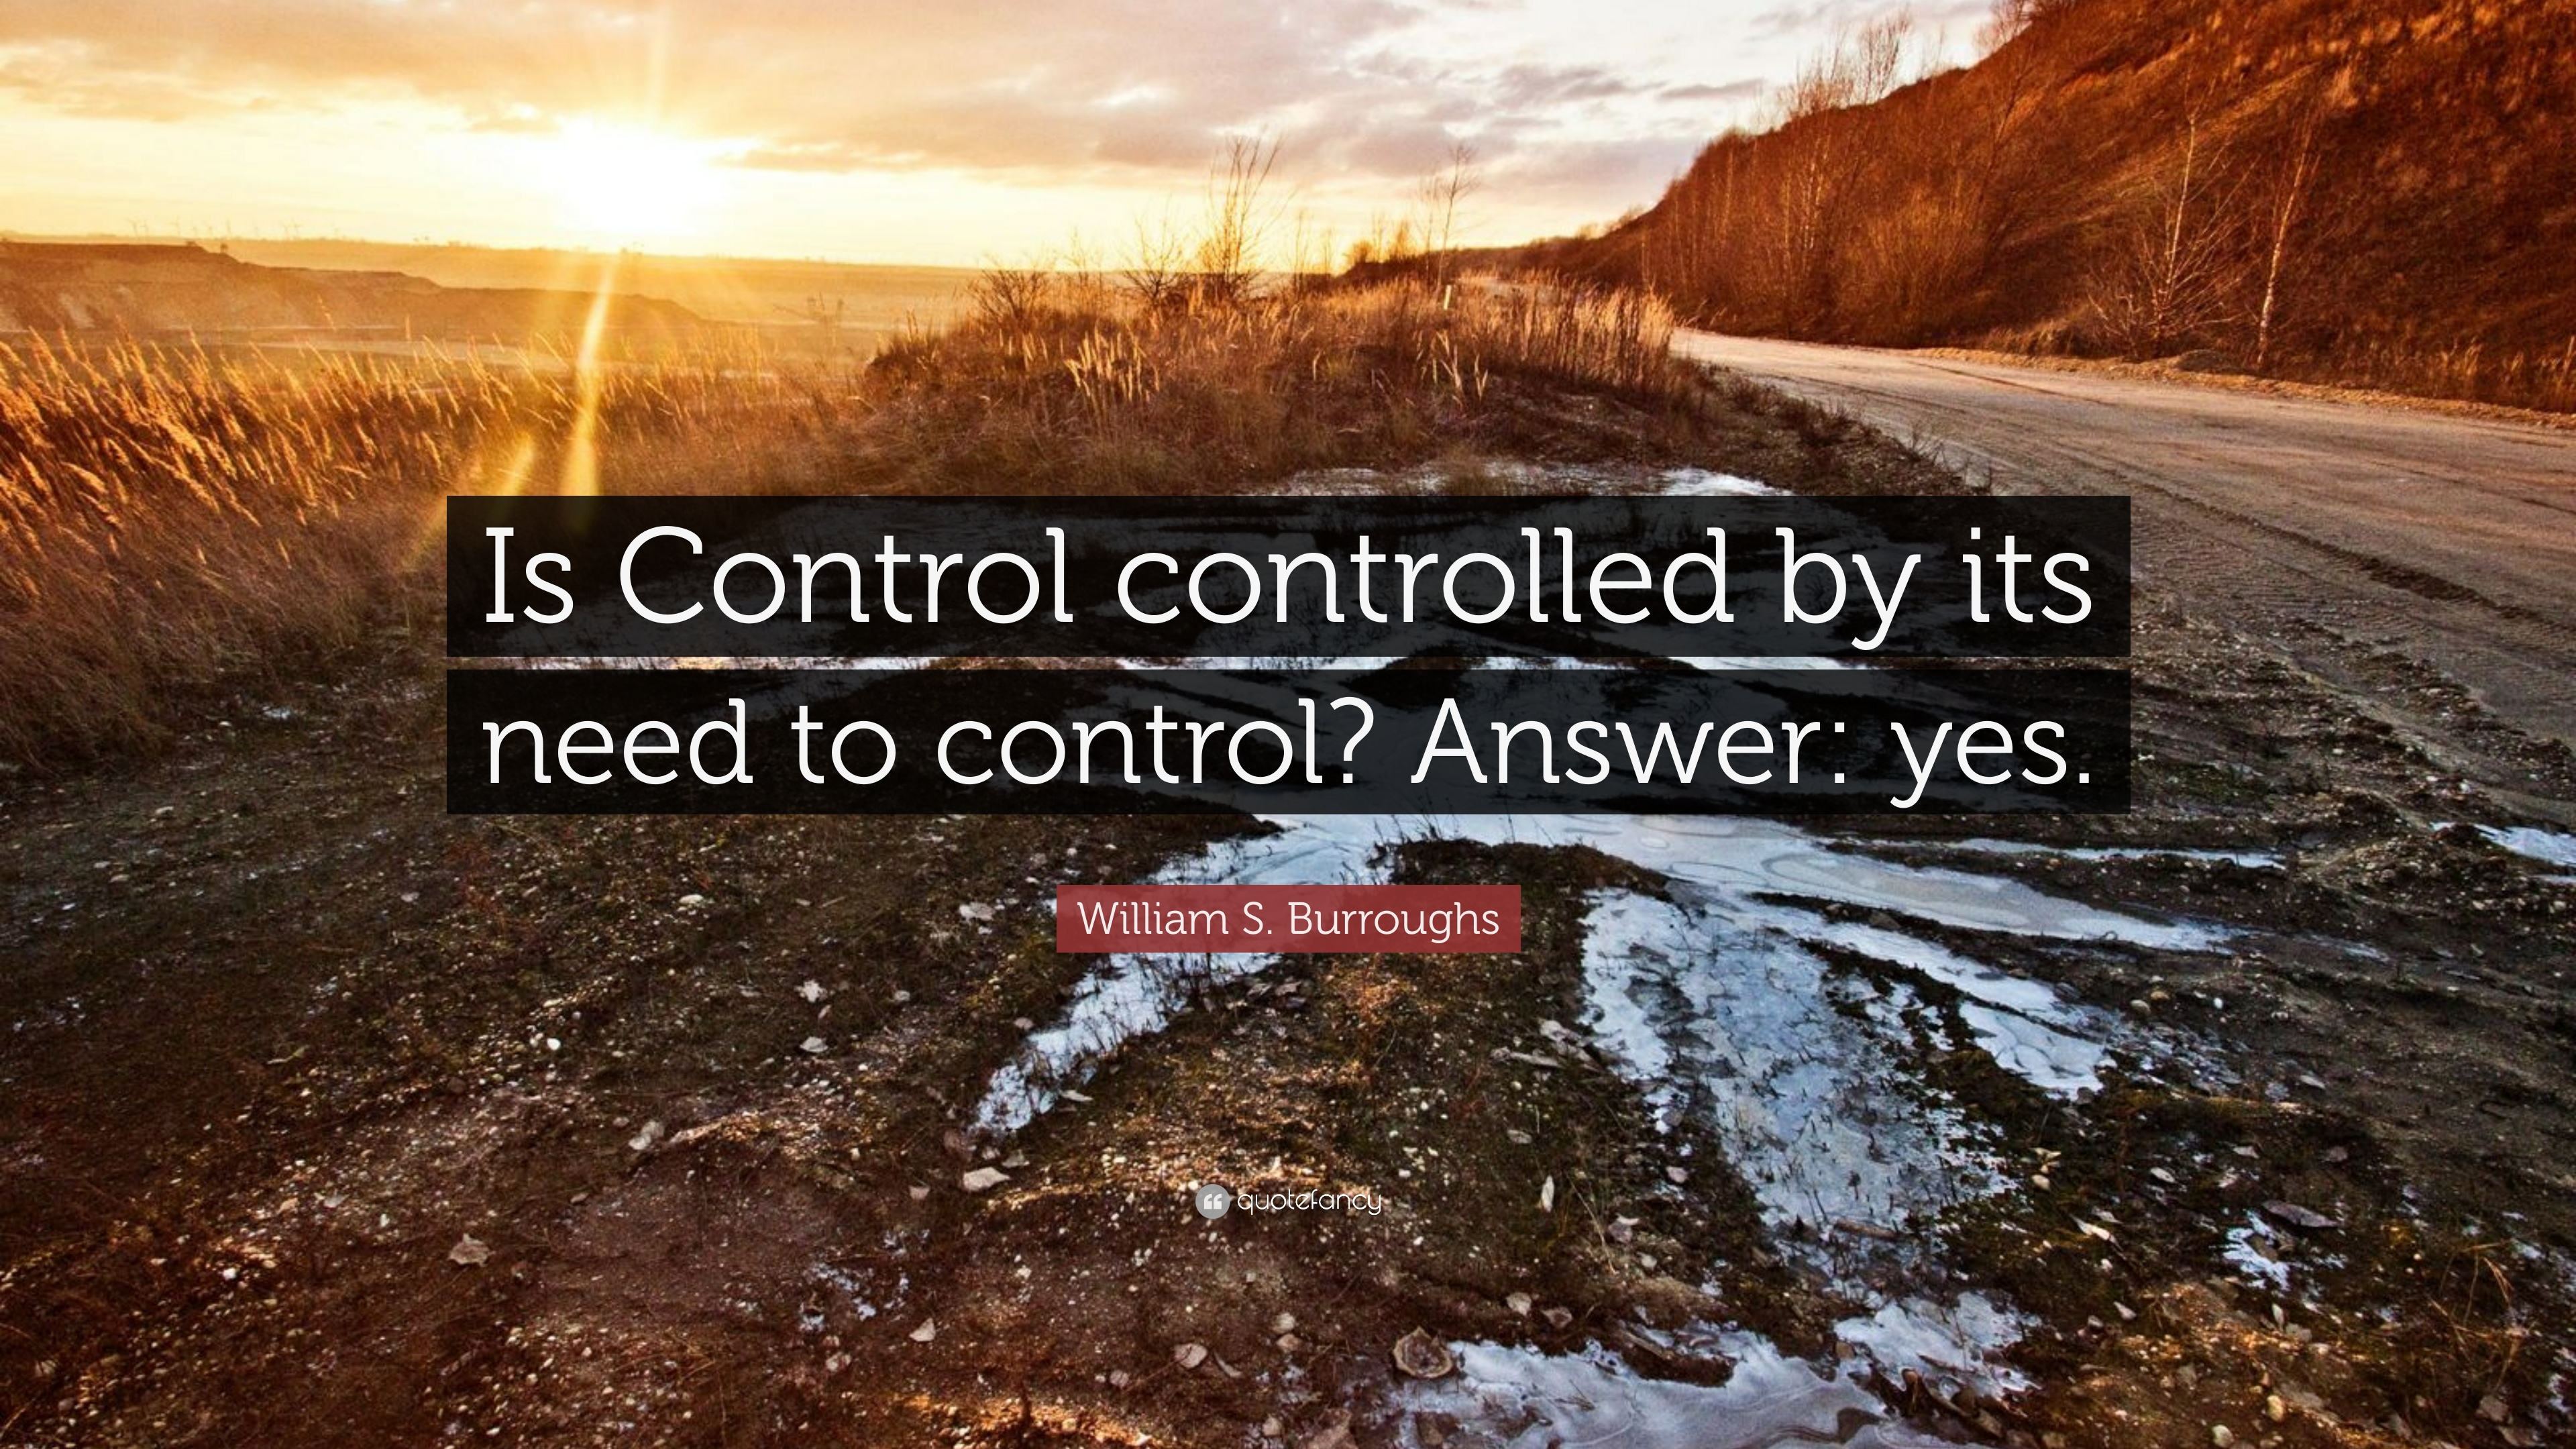 William S Burroughs Quote Is Control Controlled By Its Need To